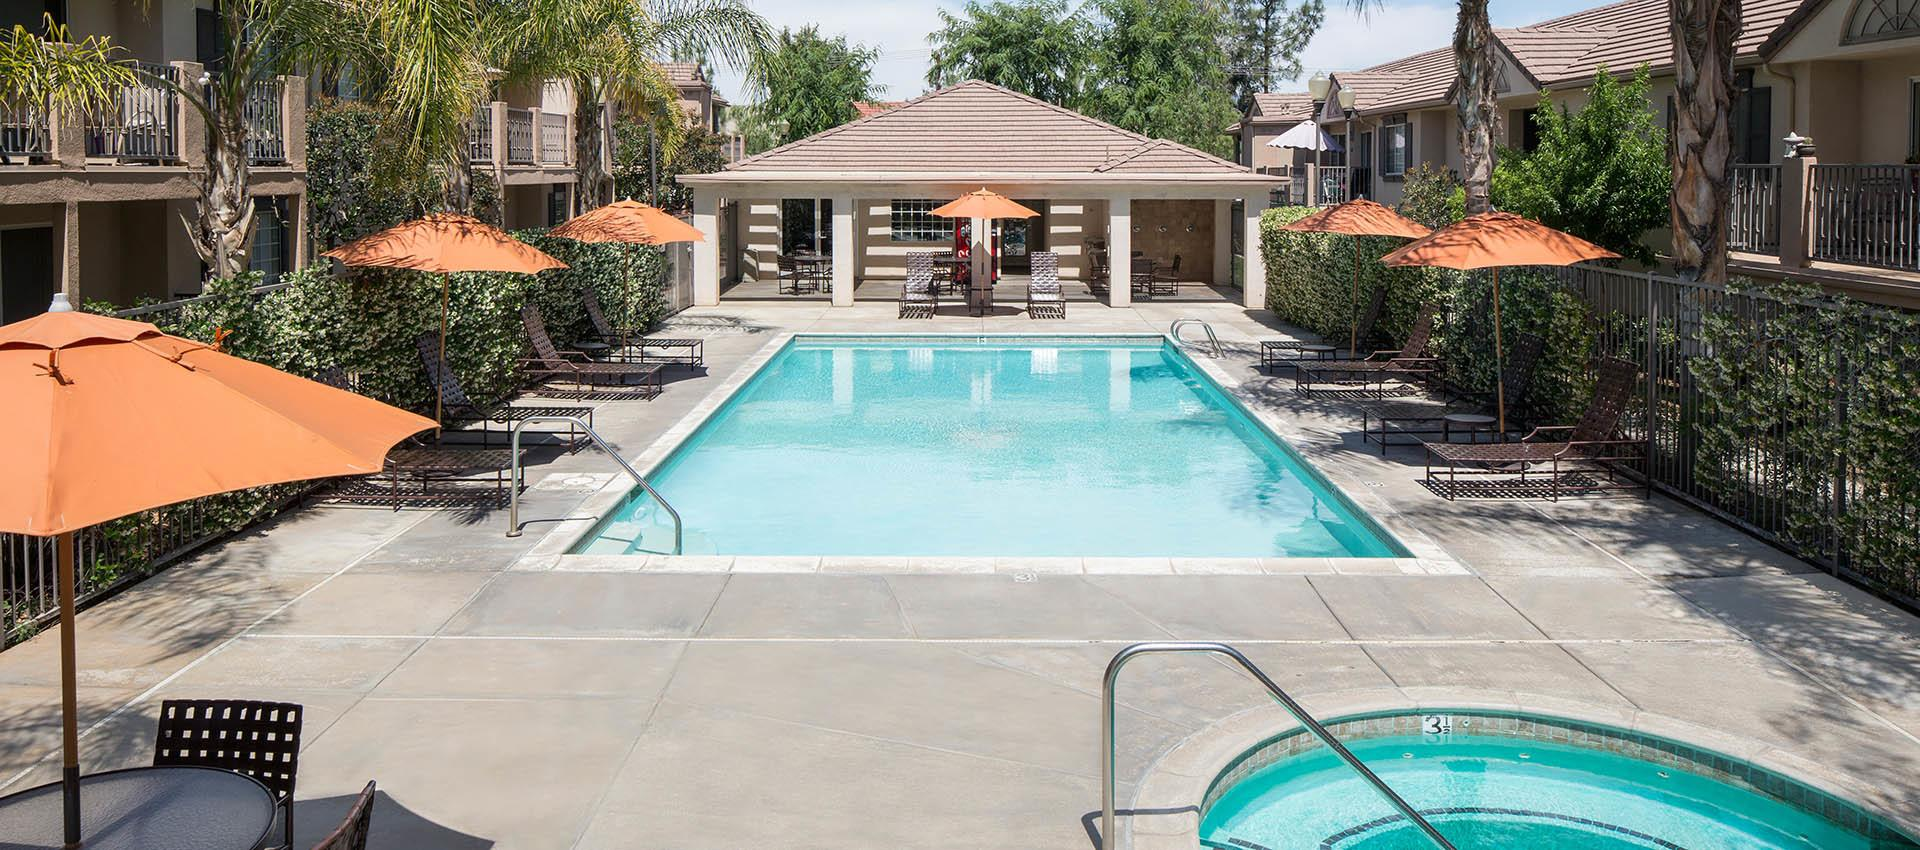 Expansive Pool Deck With Spa at Cypress Villas Apartment Homes in Redlands